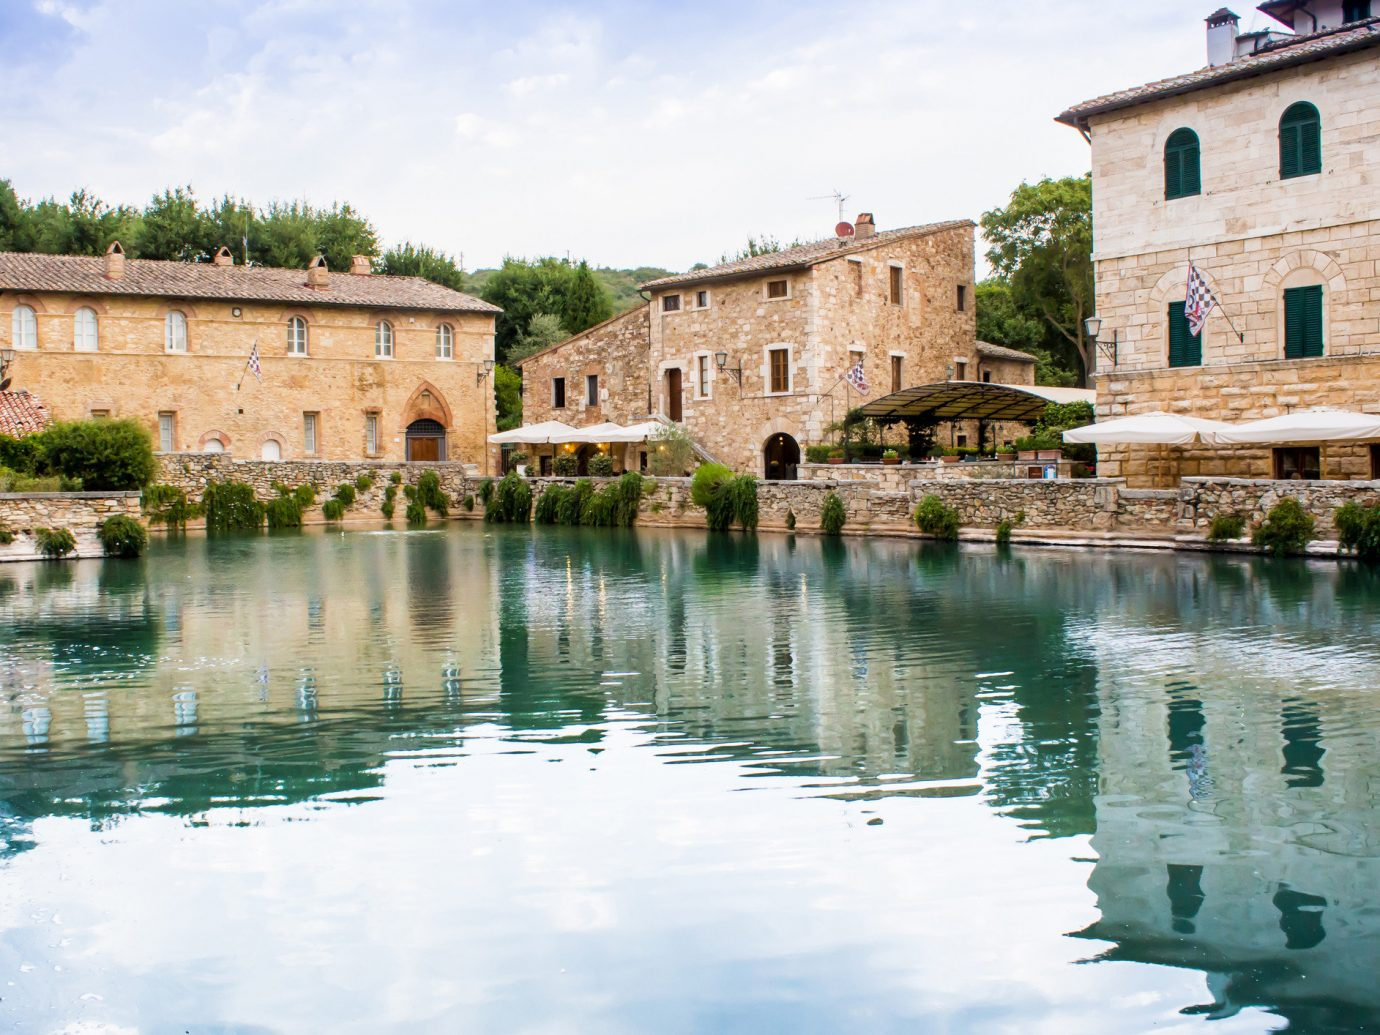 Trip Ideas water outdoor building sky house reflection estate vacation palace River swimming pool Lake waterway château thermae surrounded Town pond castle